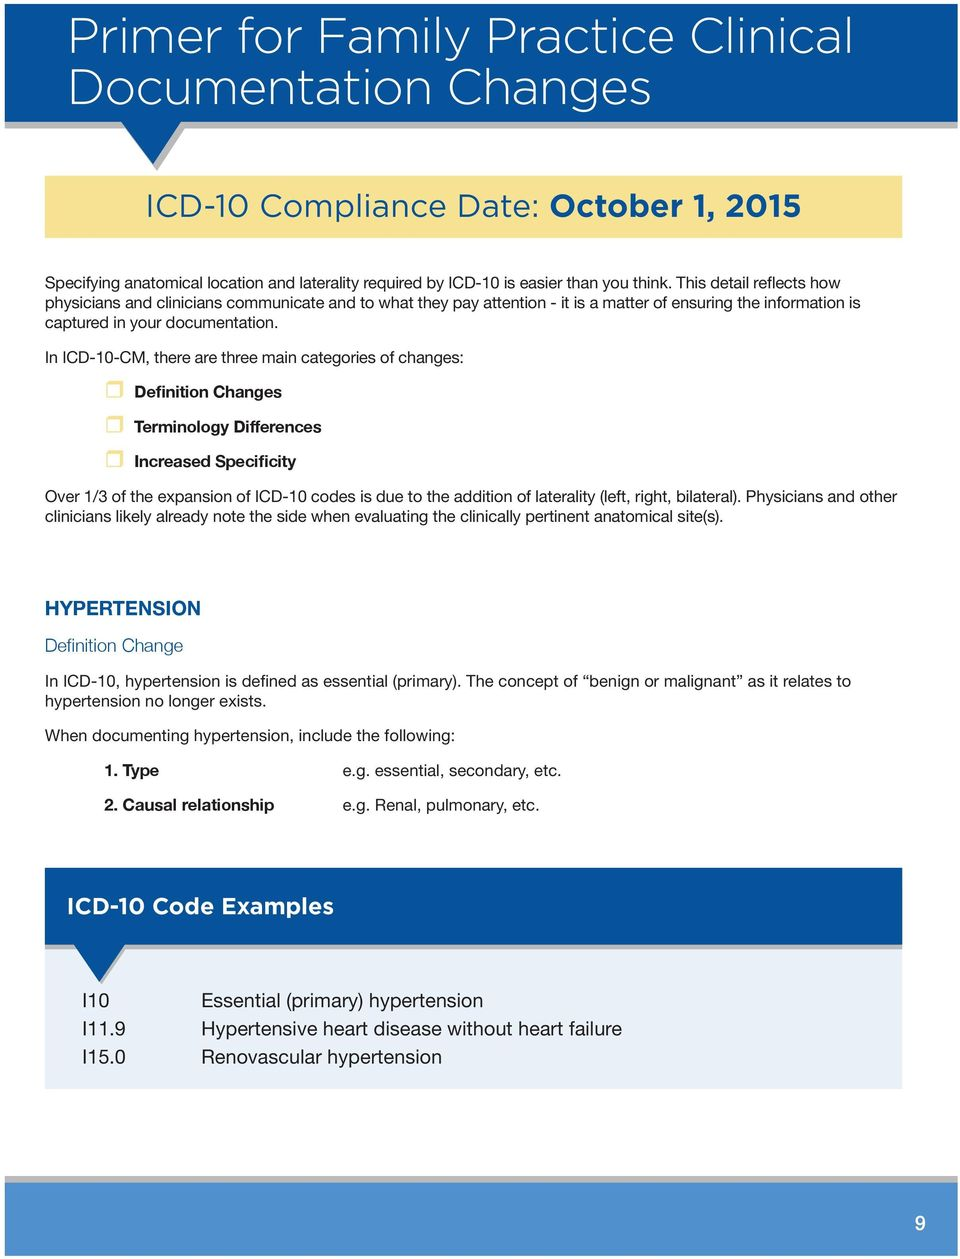 The Diagnosis Of Hypertension Icd10 Code I10 In 2002 Risk Adjustment Coding